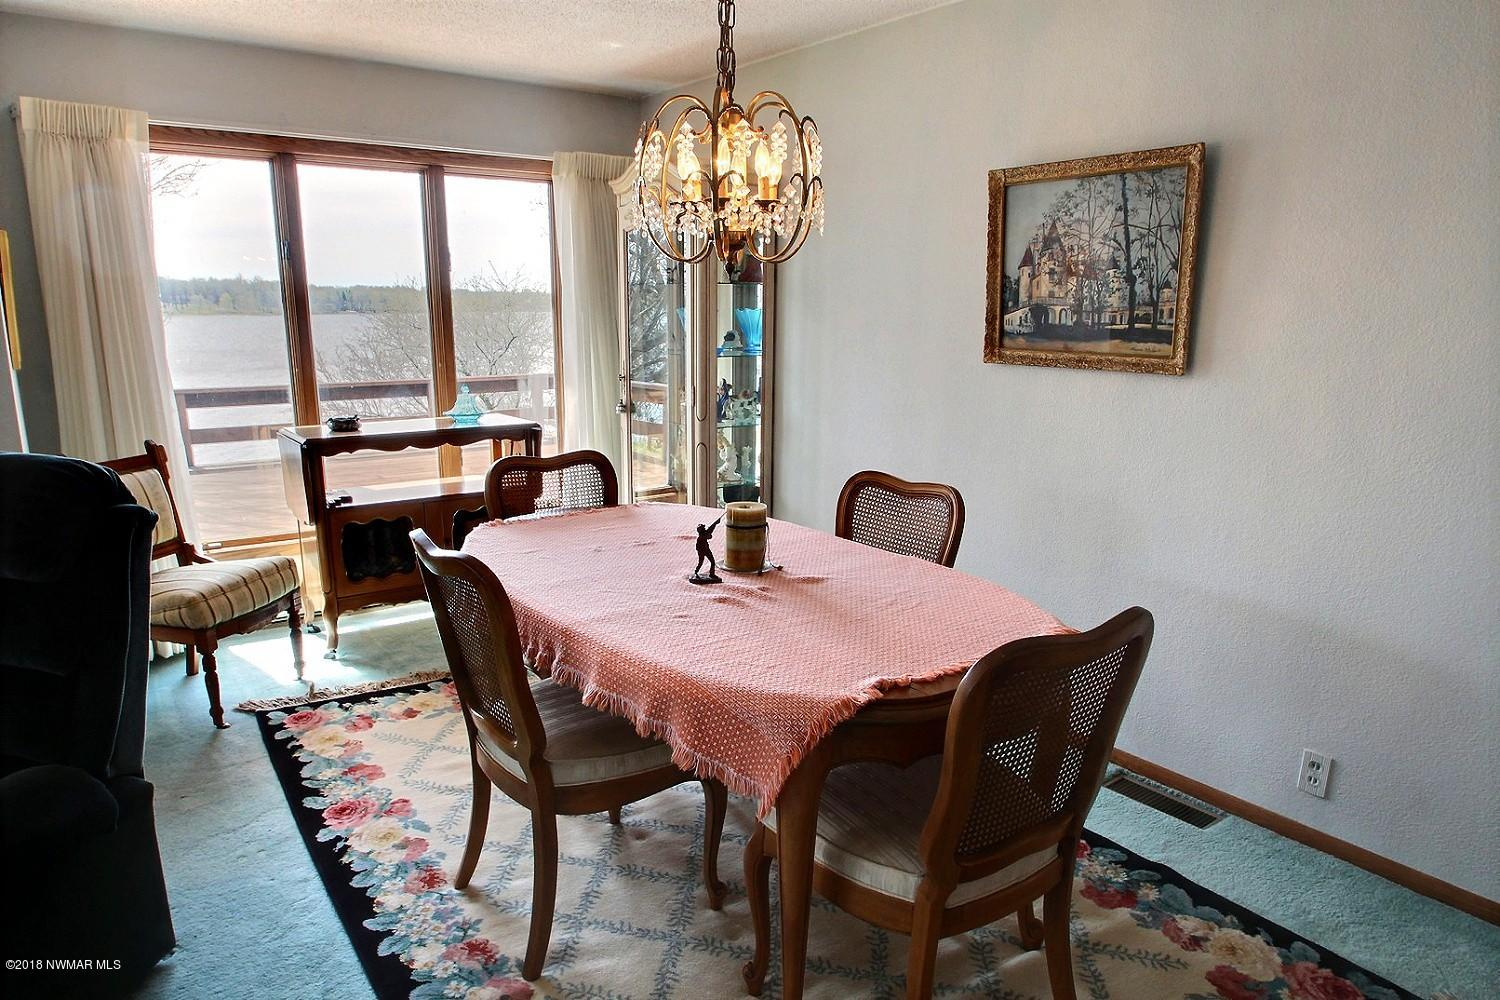 This gorgeous formal dining room boasts amazing views of Maple Lake. Invite friends and family over for holidays or weekends on the lake.